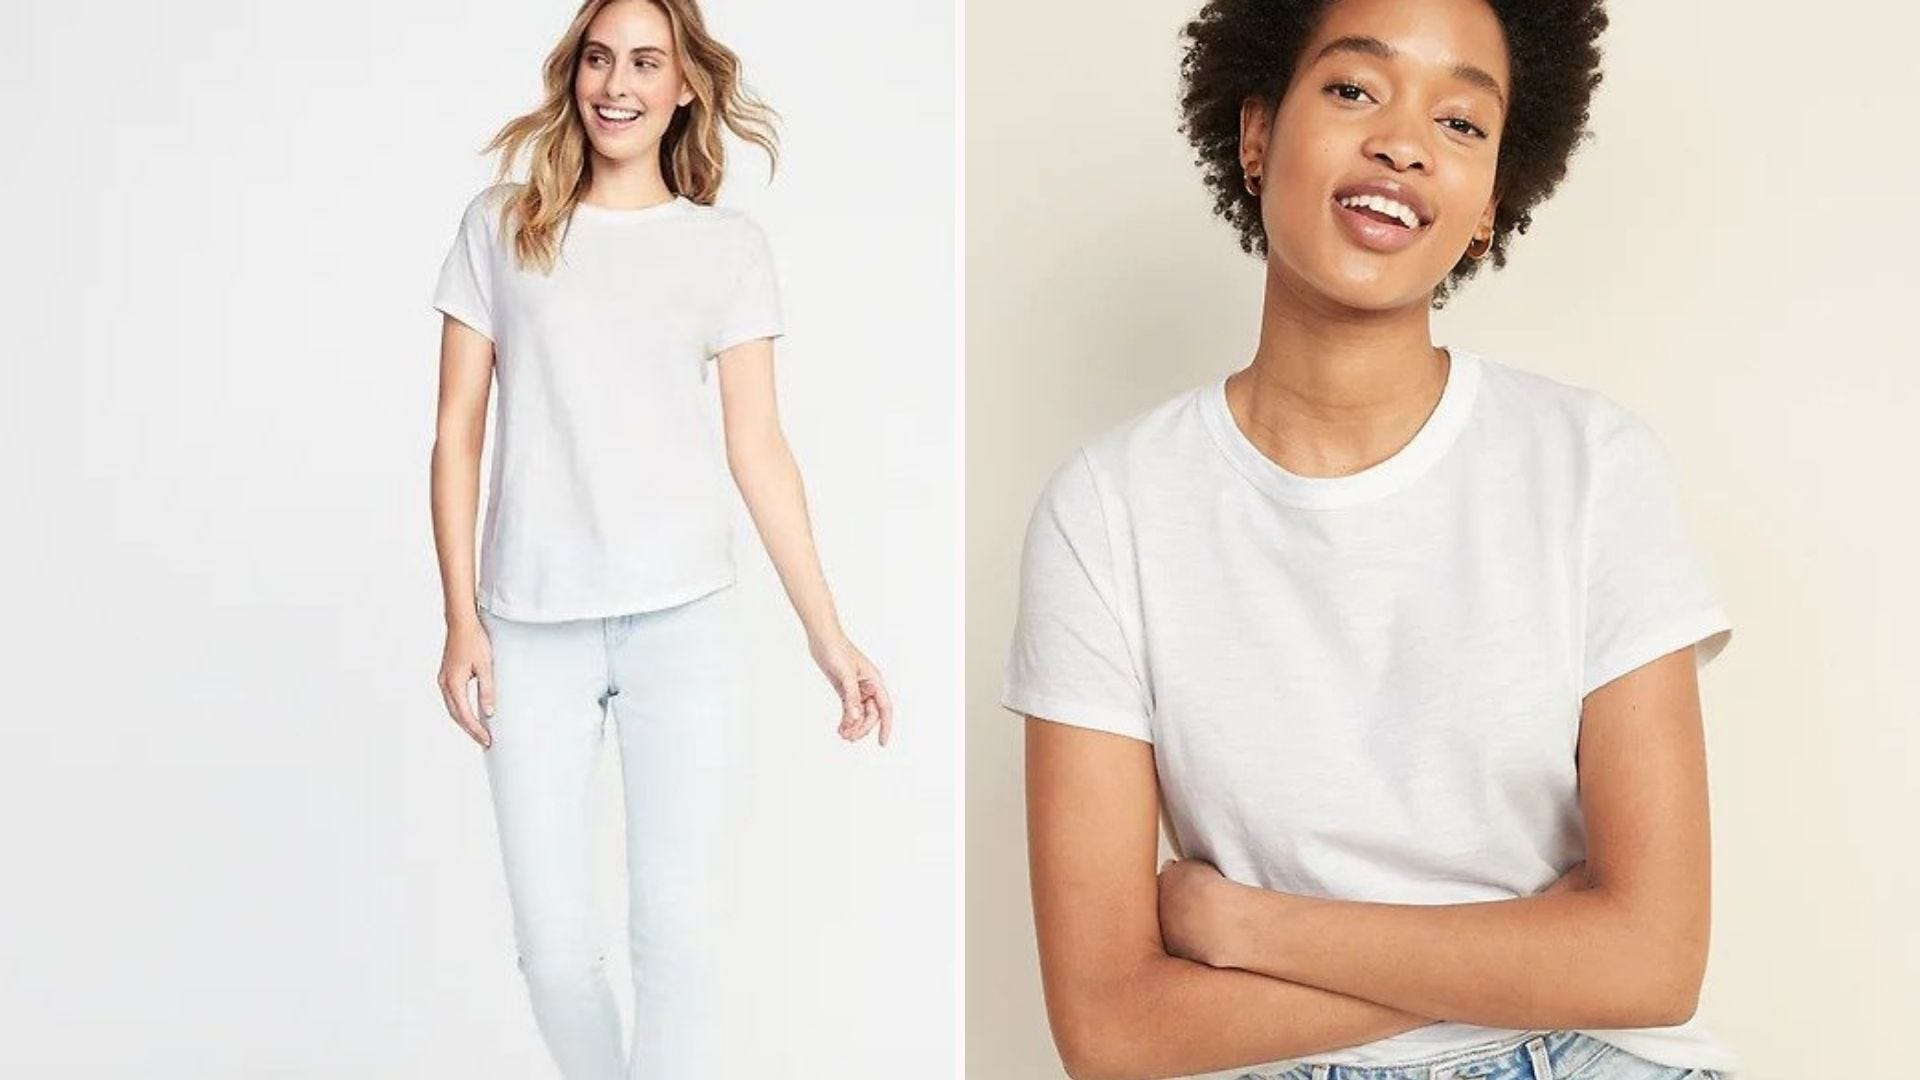 A white blonde woman in a white tee and pale jeans; a Black woman in a white tee and jeans